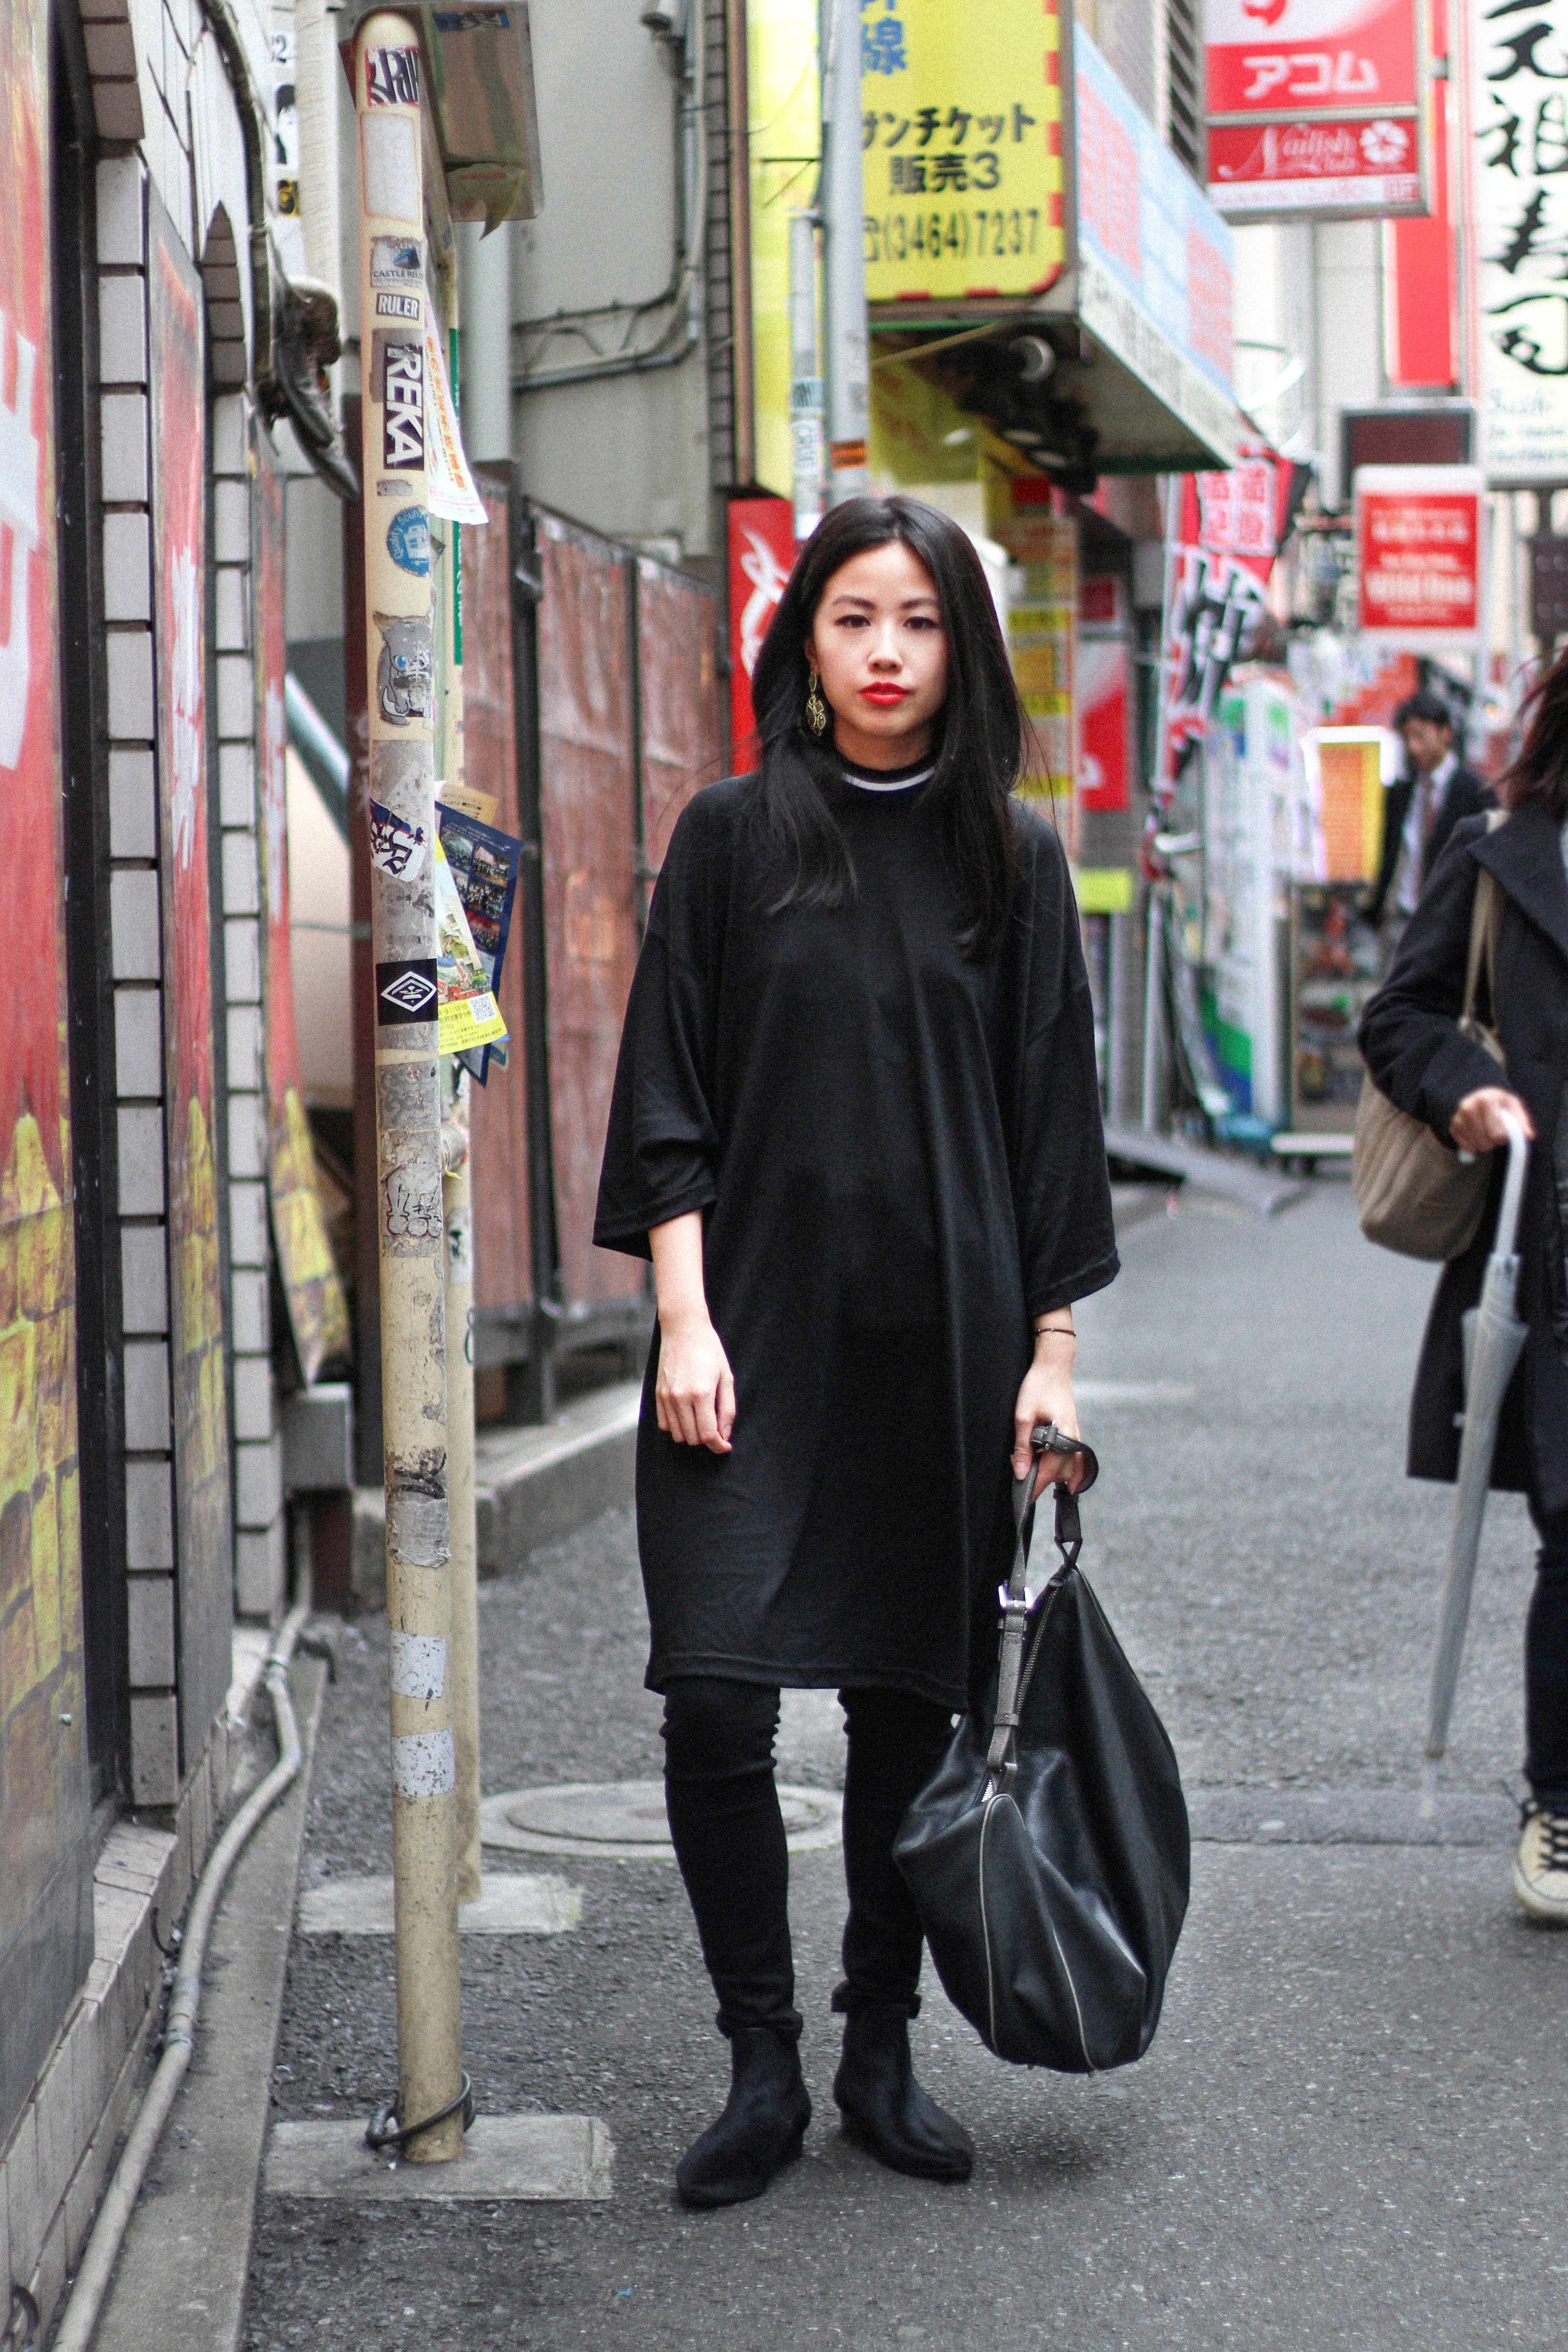 IHEARTALICE.DE – Fashion & Travel-Blog by Alice M. Huynh from Berlin/Germany: Tokyo, Japan Travel Diary – All Black Everything Look in Tokyo wearing Non Tokyo Turtleneck Dress & Skinny Jeans with Chelsea Boots in Black/ Tokyo Streetstyle